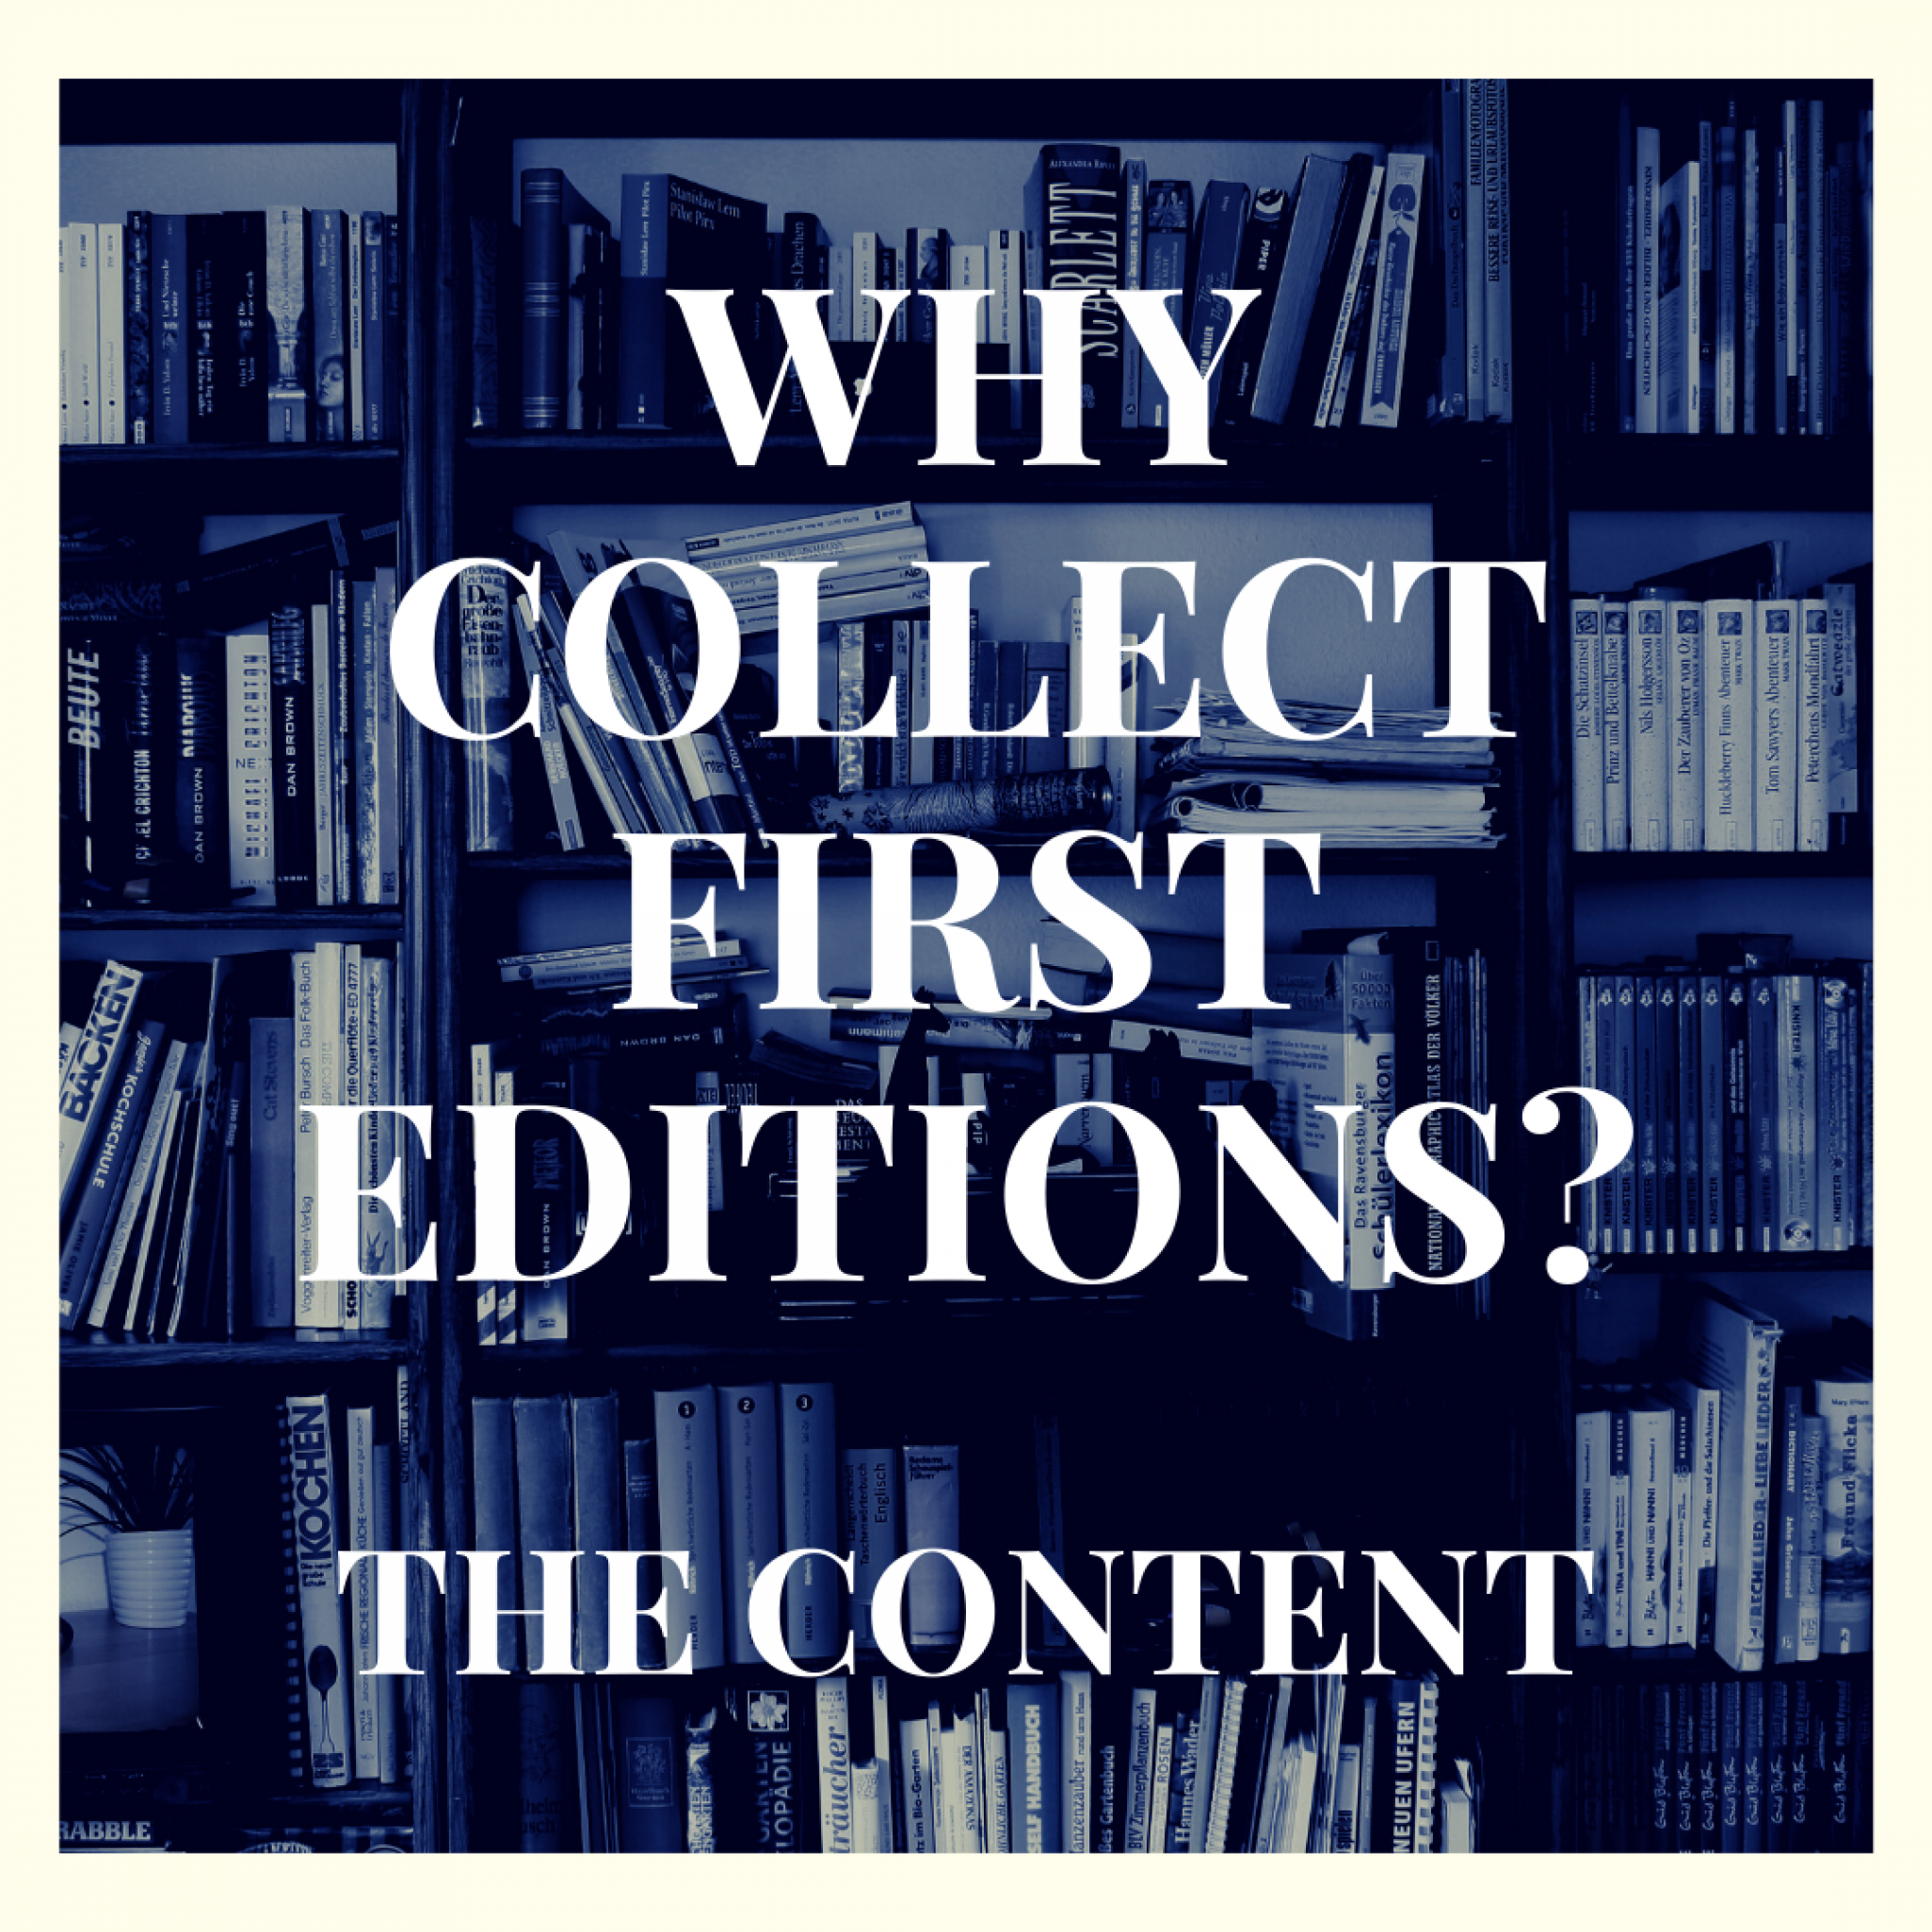 Why Collect First Editions? - The Content